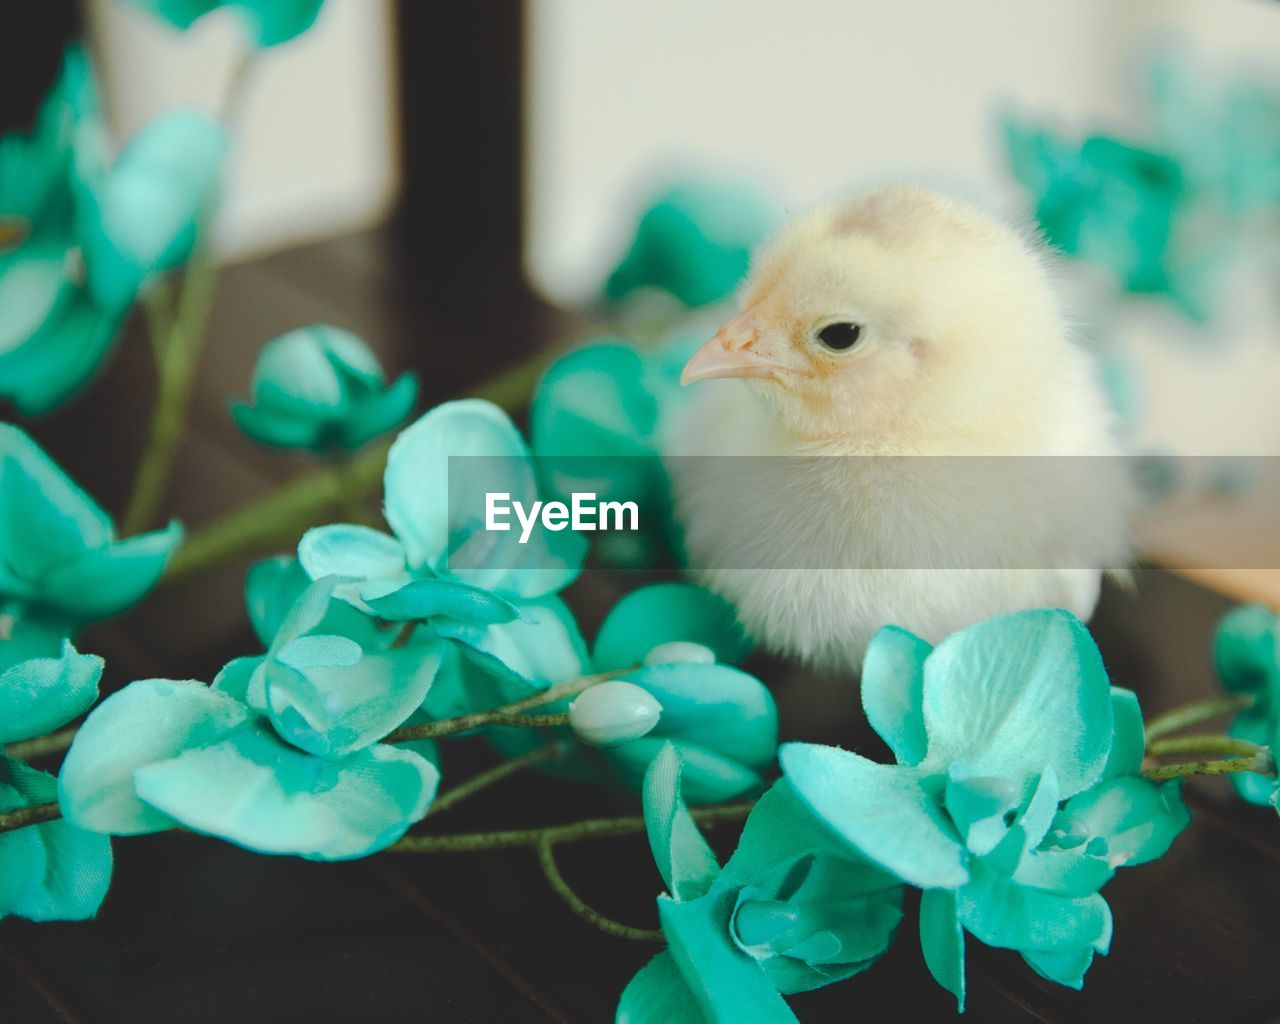 bird, animal themes, animal, vertebrate, young bird, close-up, one animal, focus on foreground, plant, no people, young animal, nature, domestic animals, chicken - bird, baby chicken, livestock, domestic, pets, day, green color